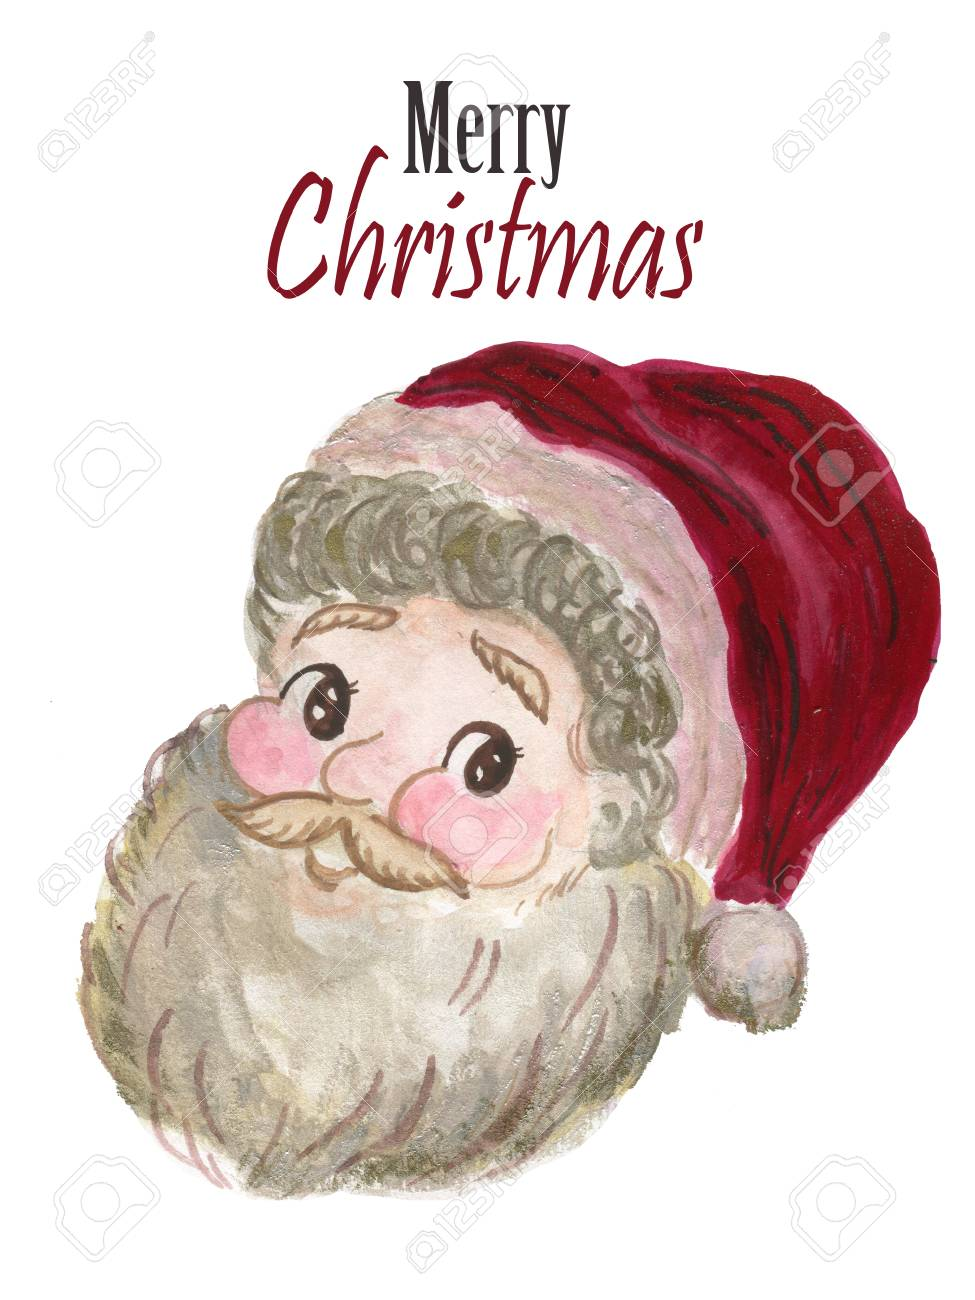 89782774439af Watercolor smile Santa Claus red hat Hand painted christmas illustration  isolated on white background for design